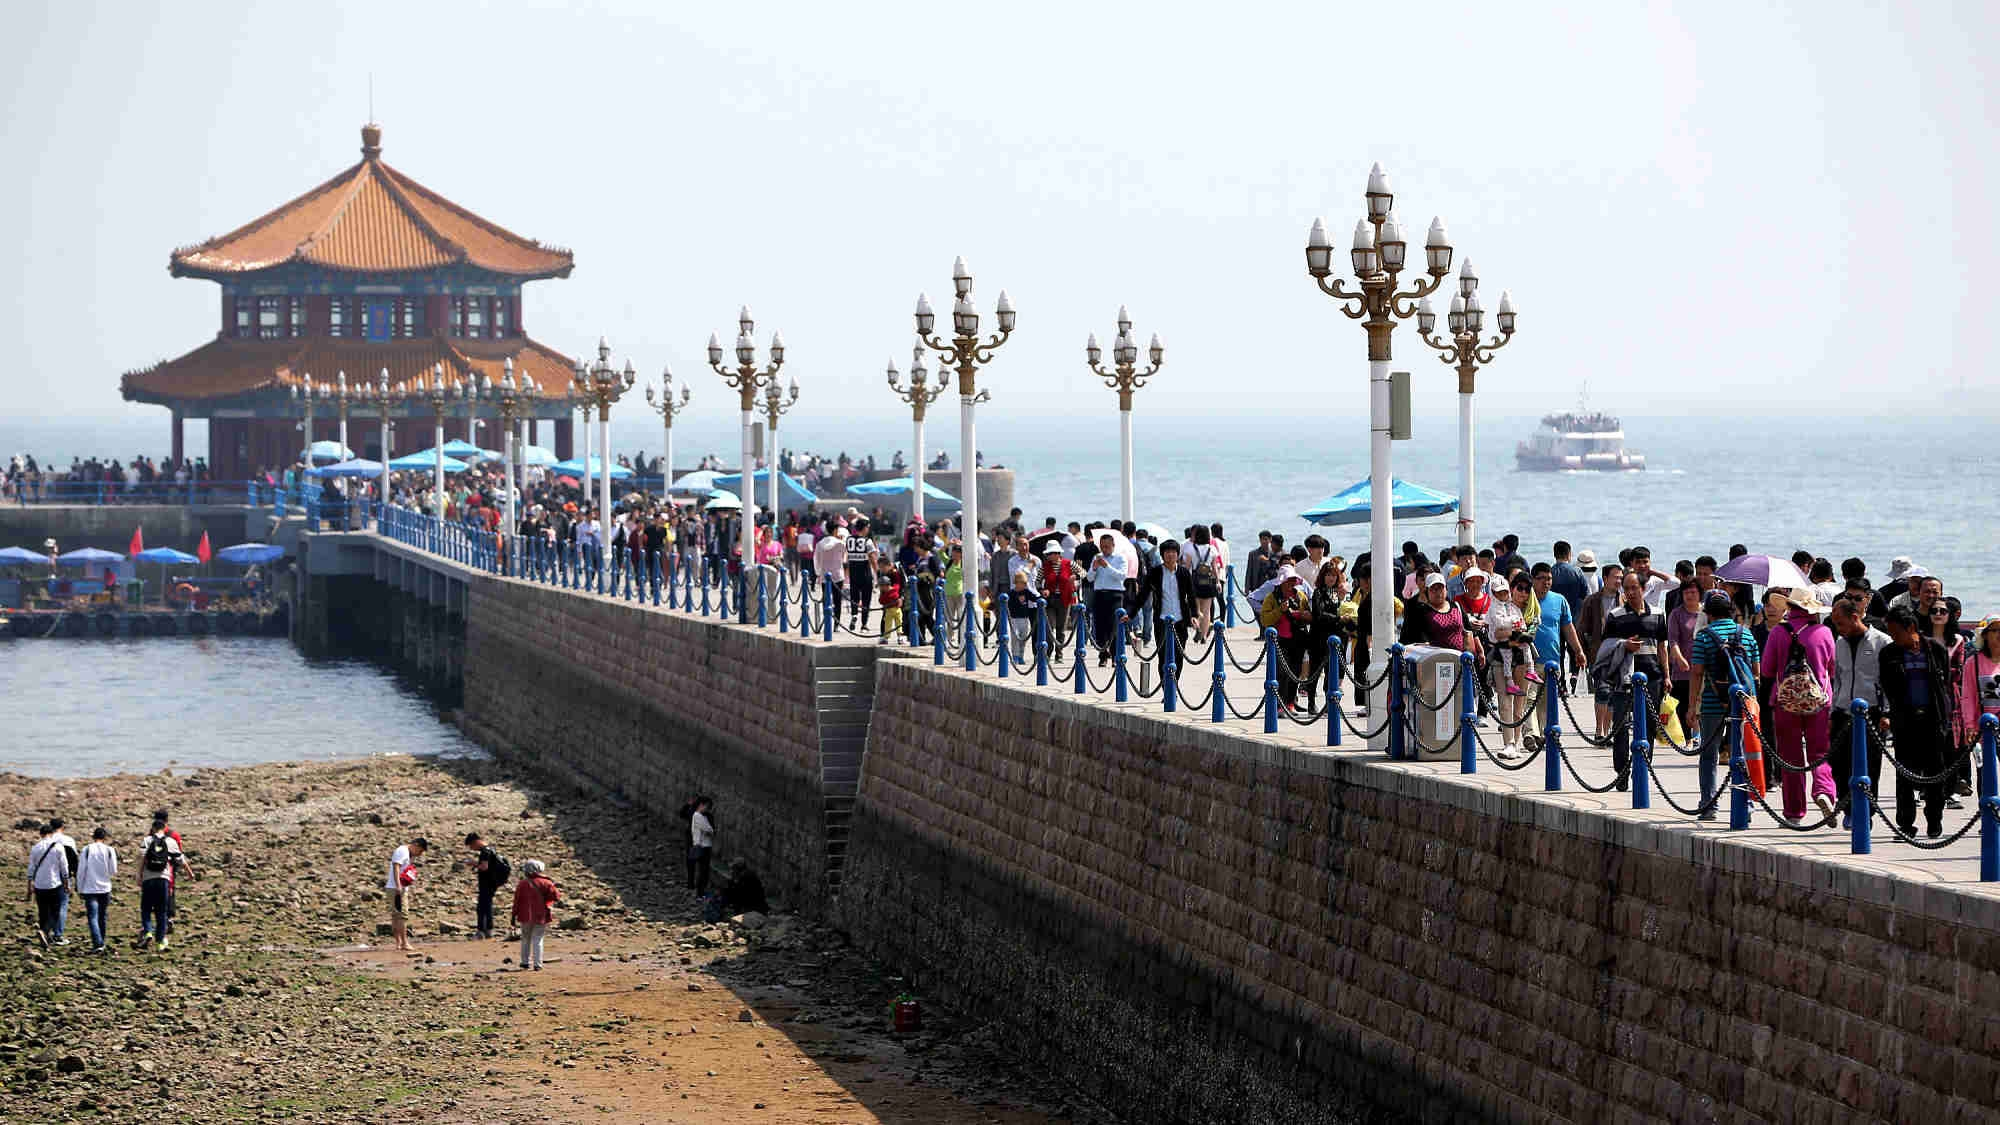 Extended May Day holiday to see 'tourism craze': Ctrip